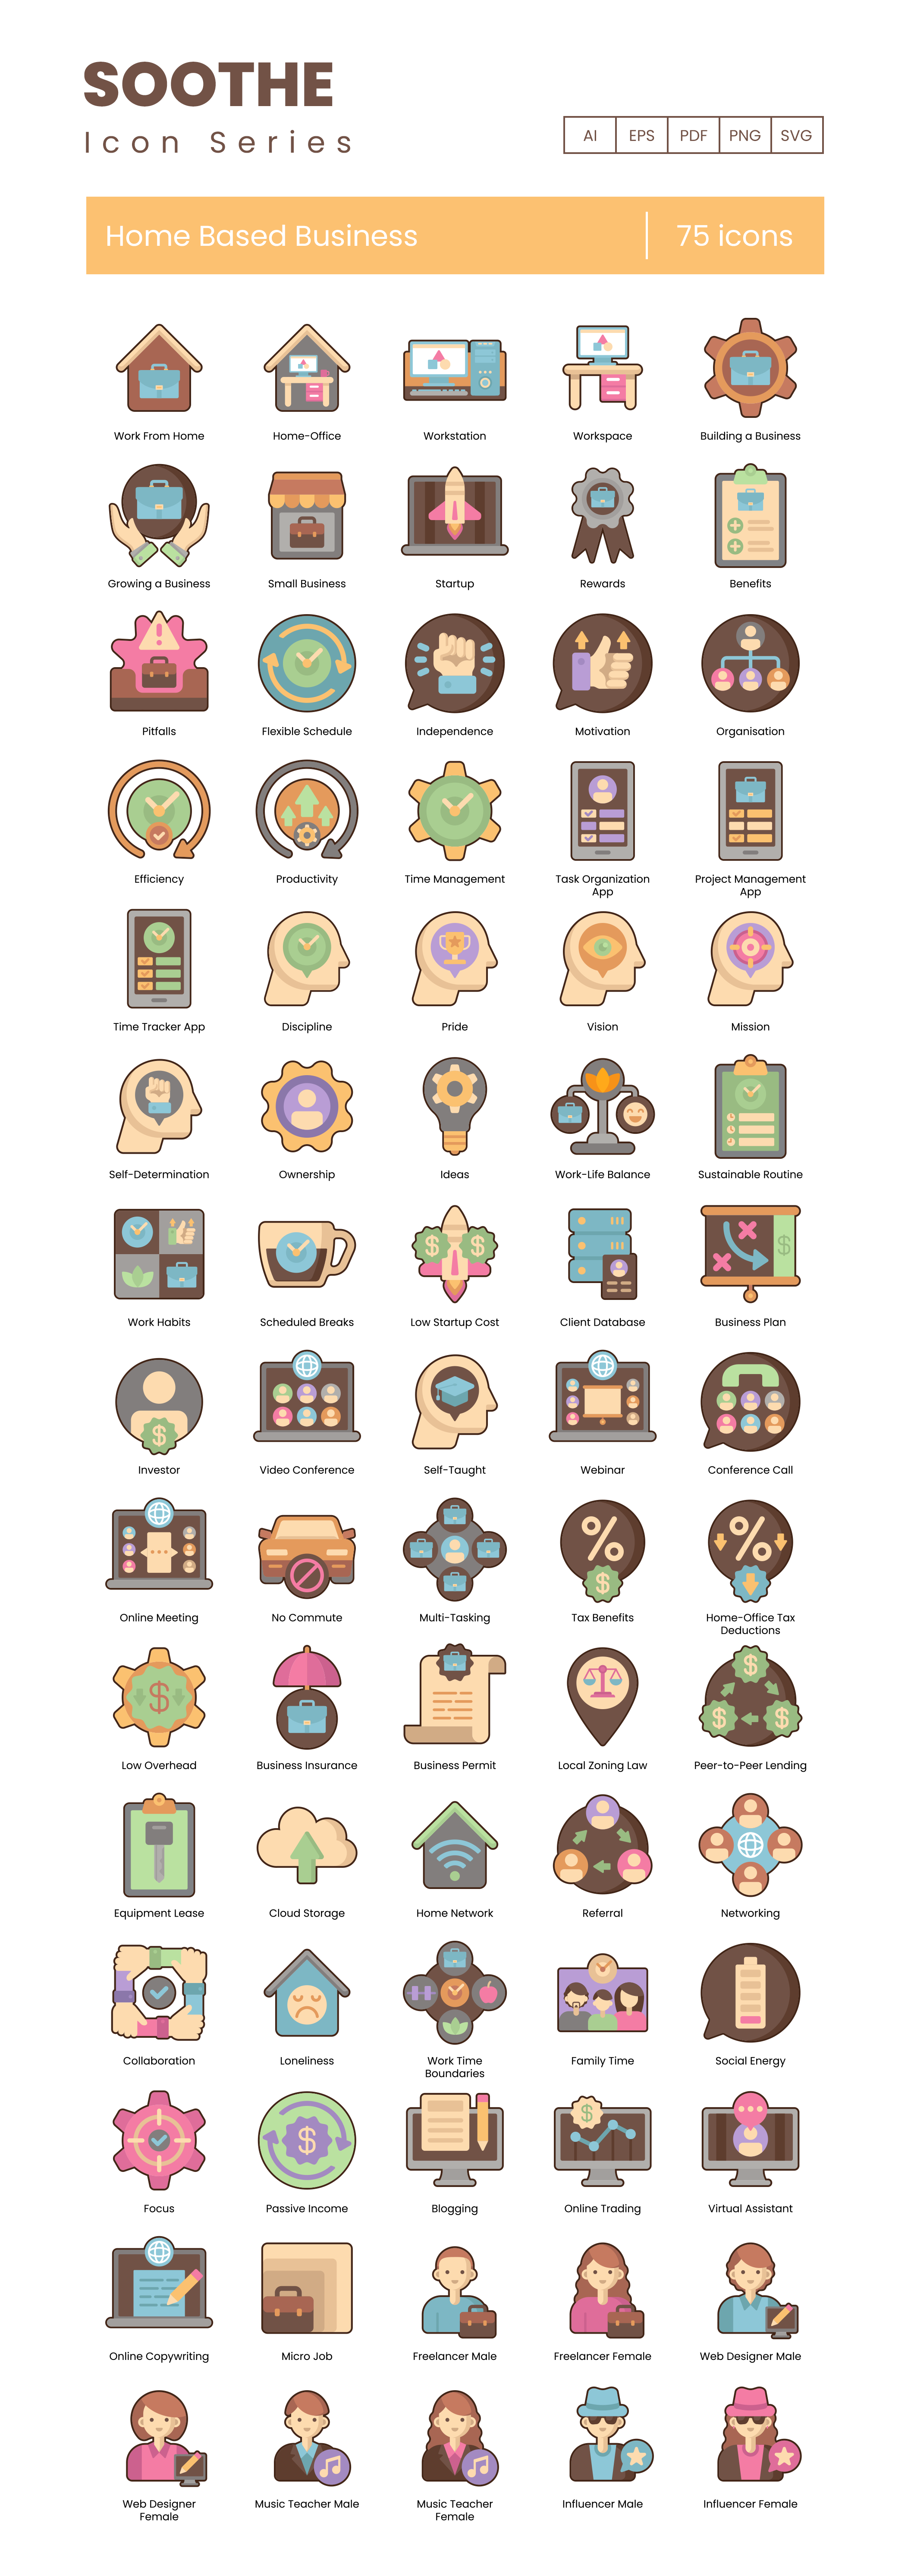 Preview Image for Home-Based Business Icon Set